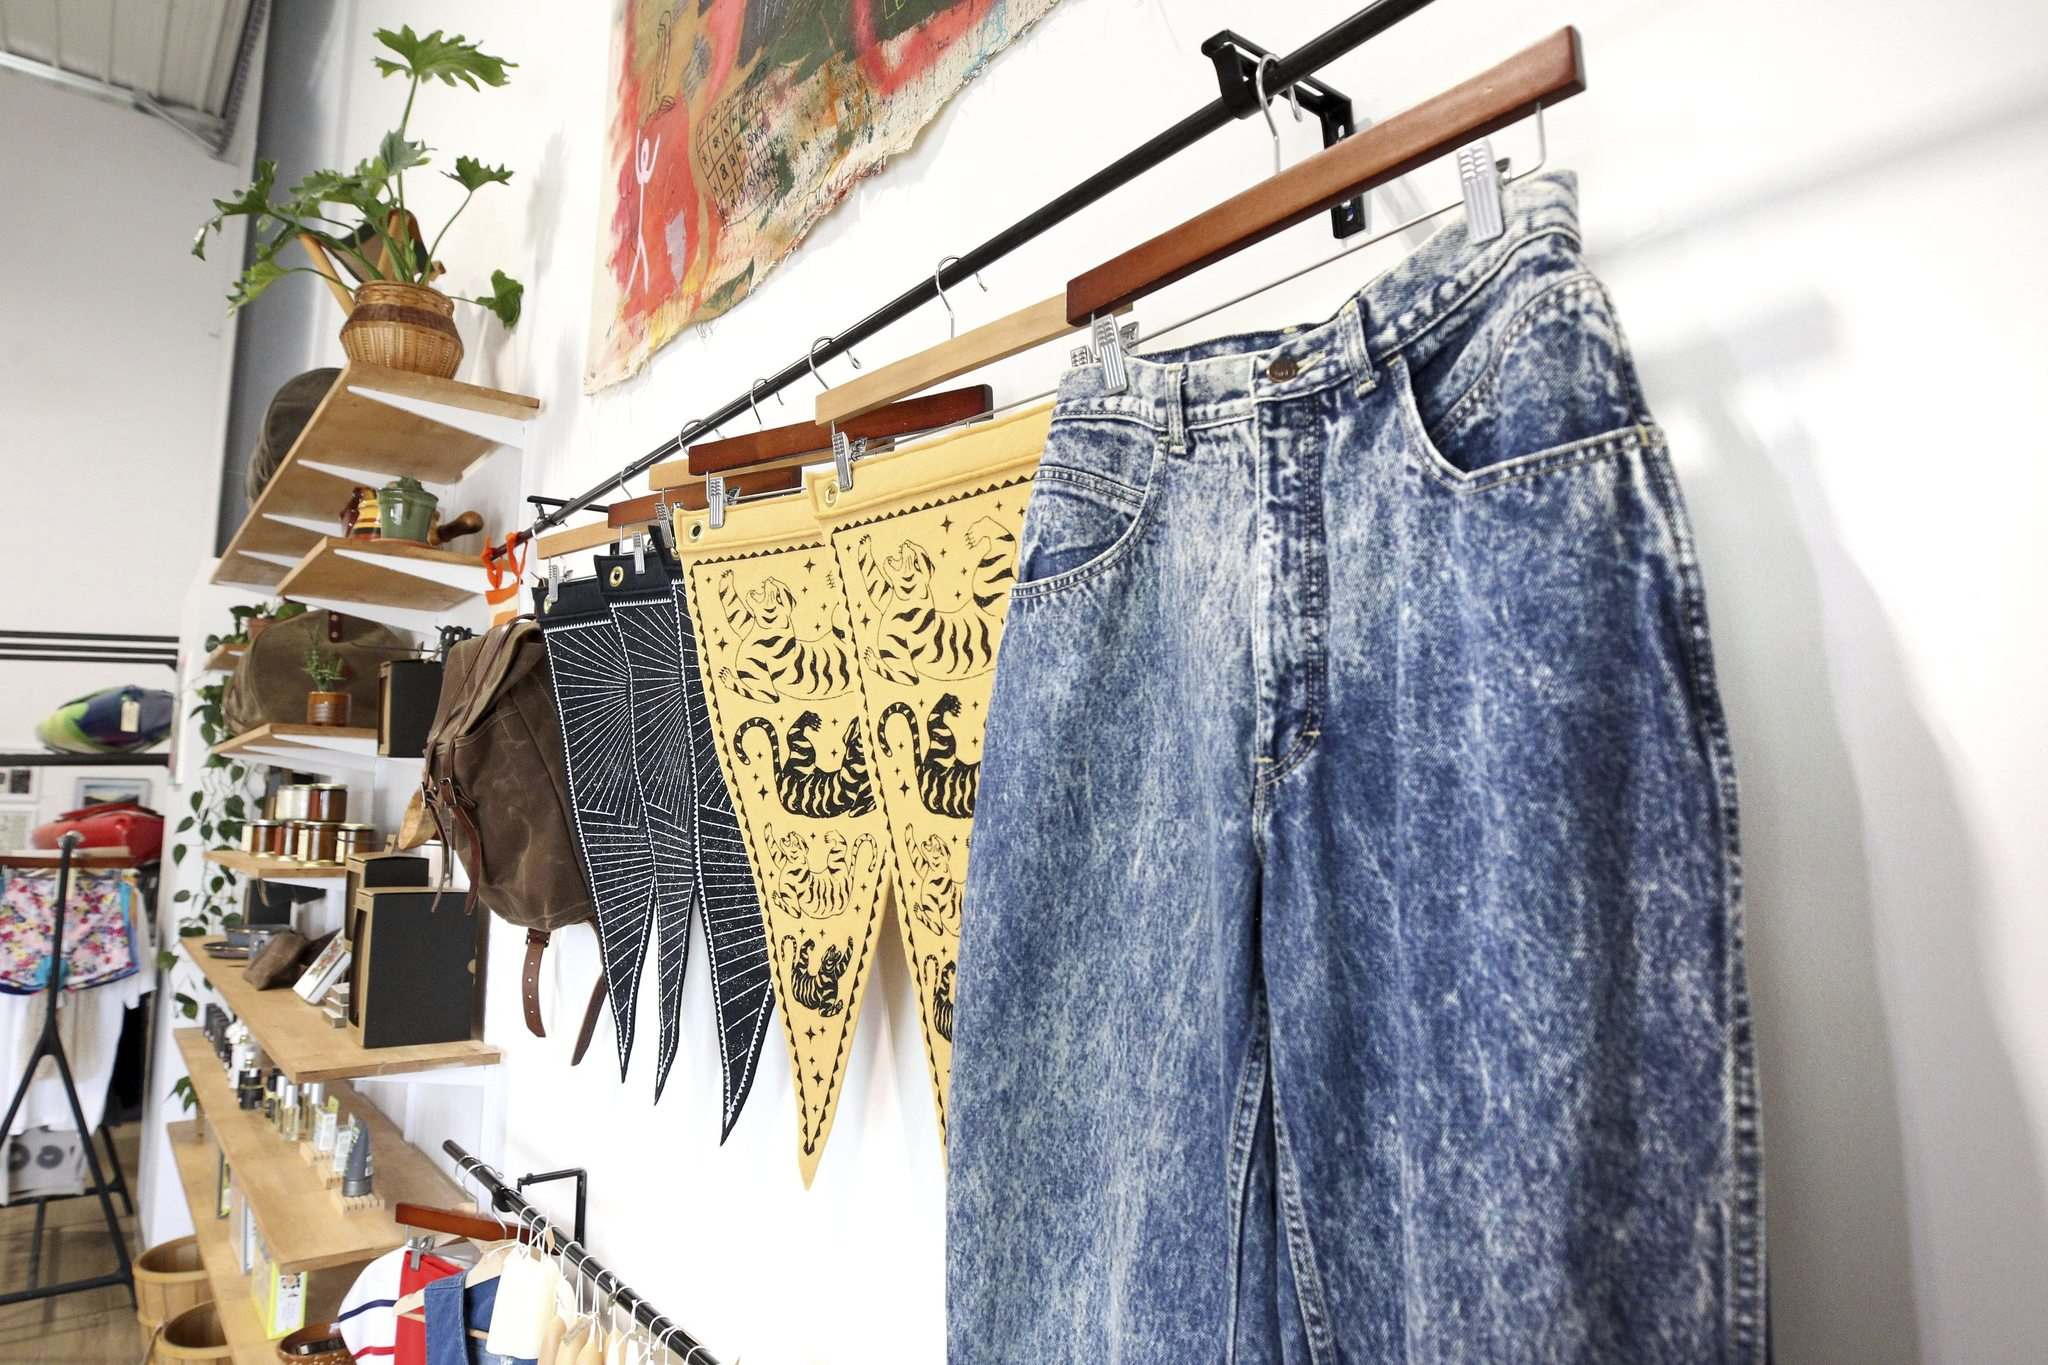 Retro clothing along with hand-printed items and locally made wares. (Ruth Bonneville / Winnipeg Free Press)</p>